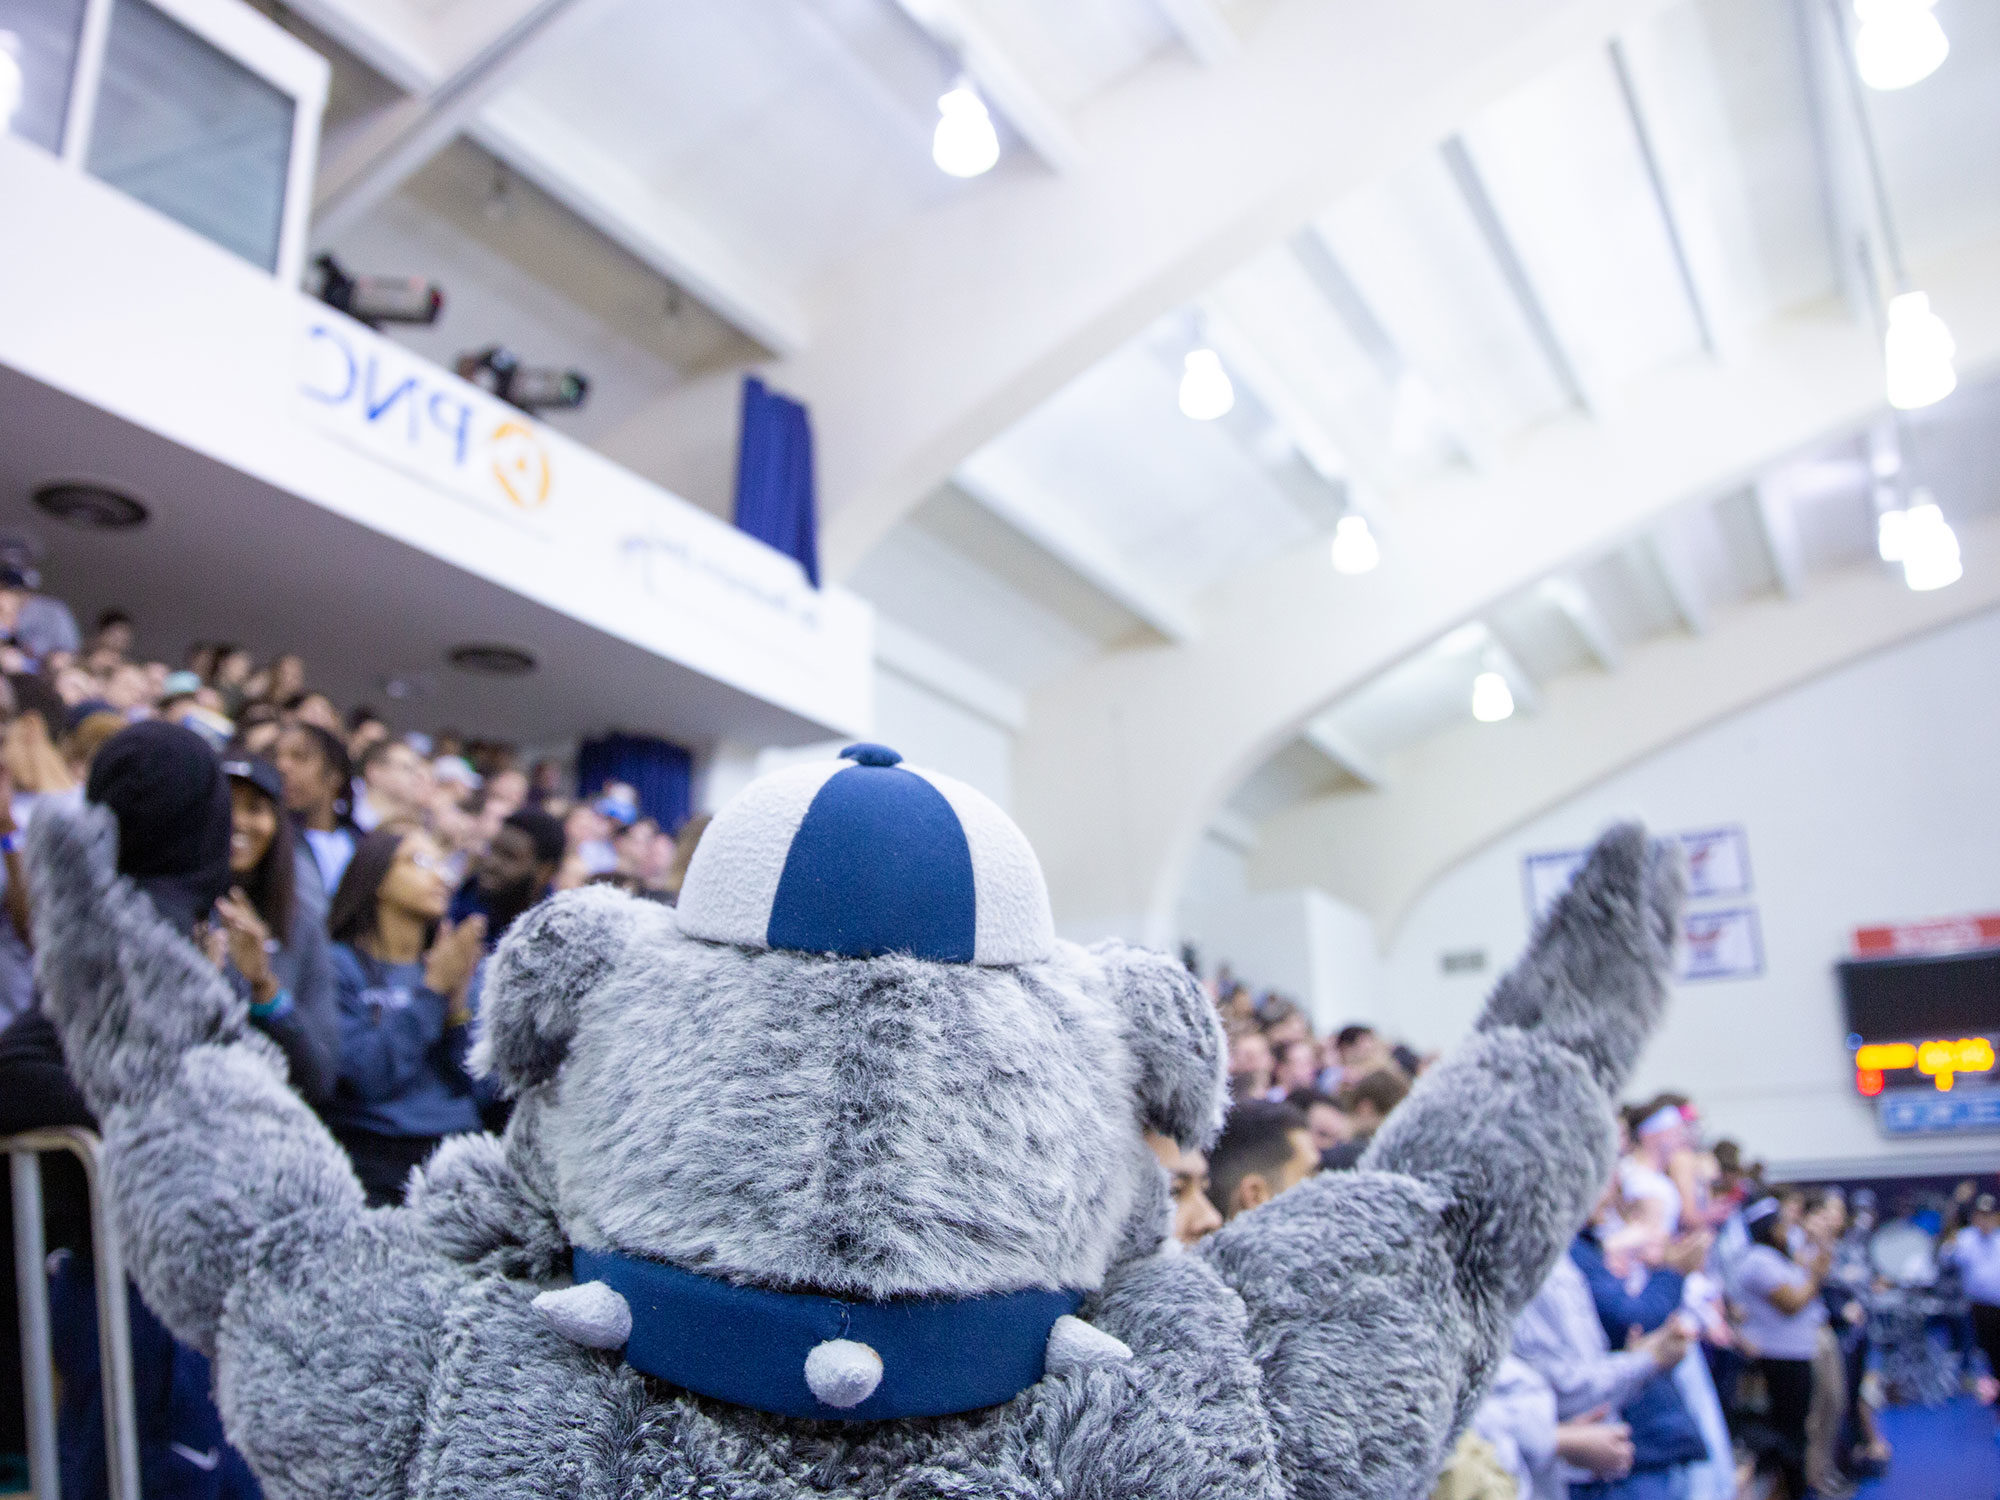 The mascot and crowd cheer during a basketball game.